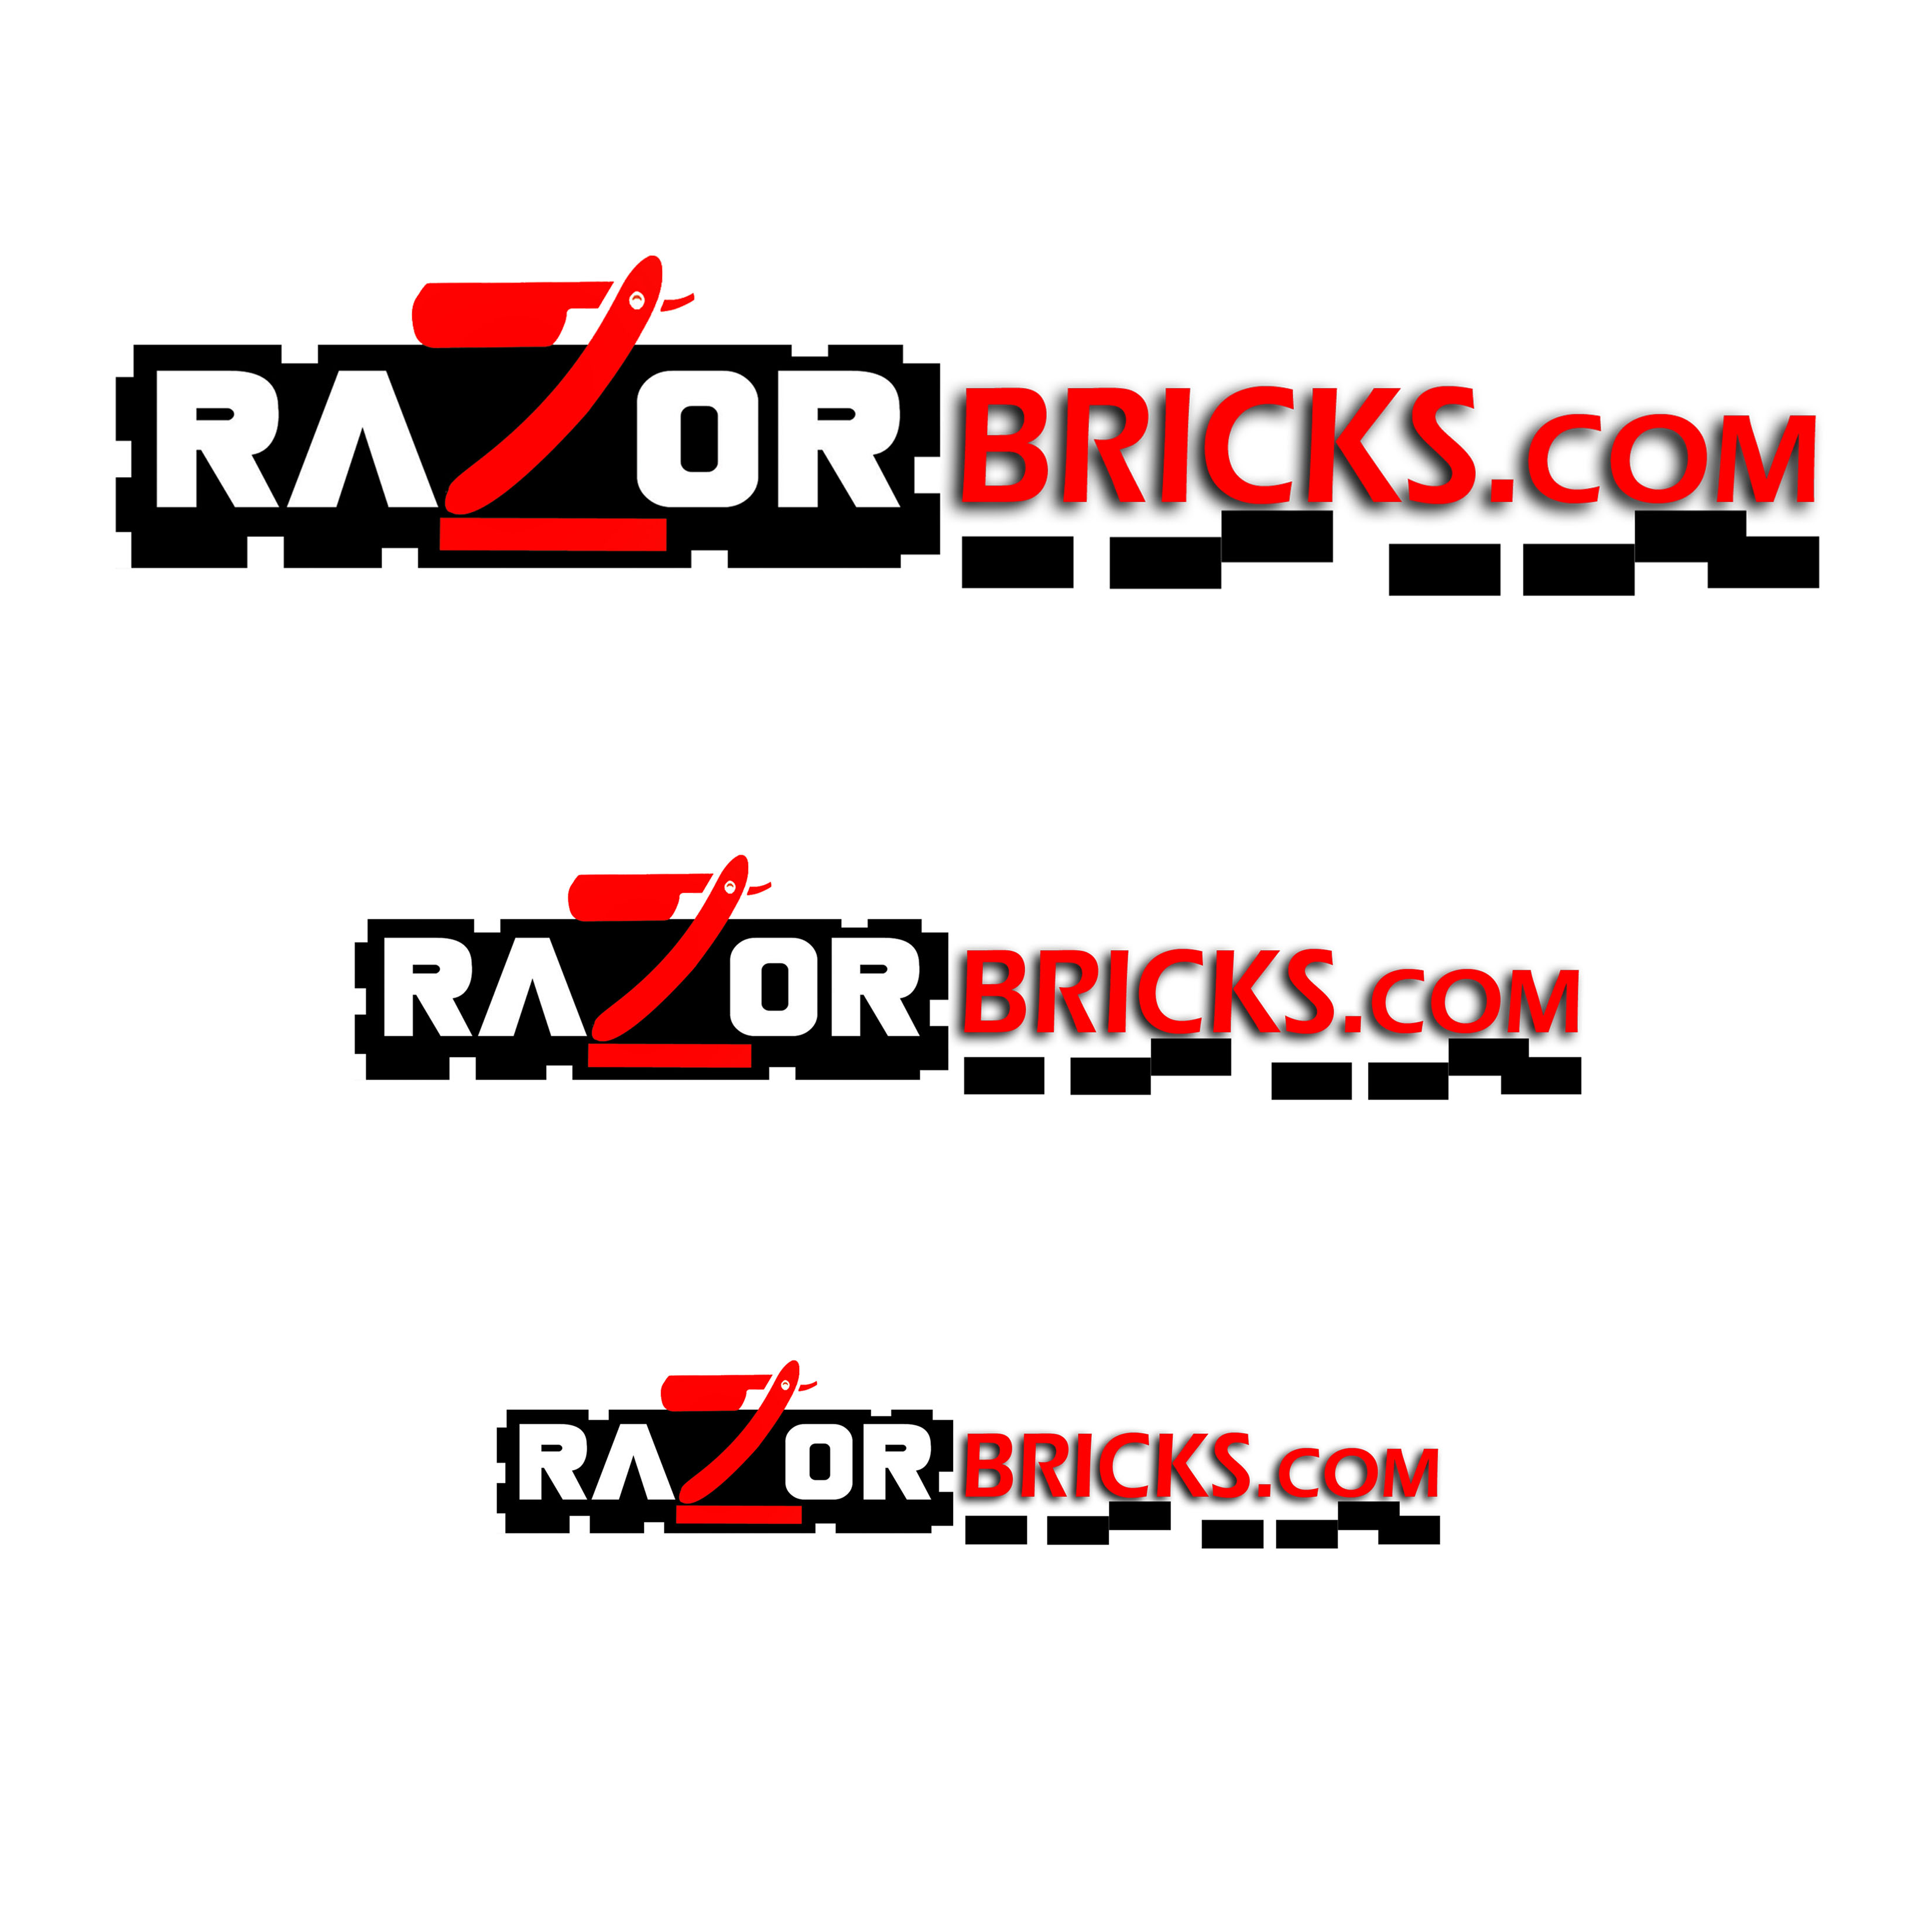 Logo Design by Alan Esclamado - Entry No. 46 in the Logo Design Contest Unique Logo Design Wanted for razorbricks.com.